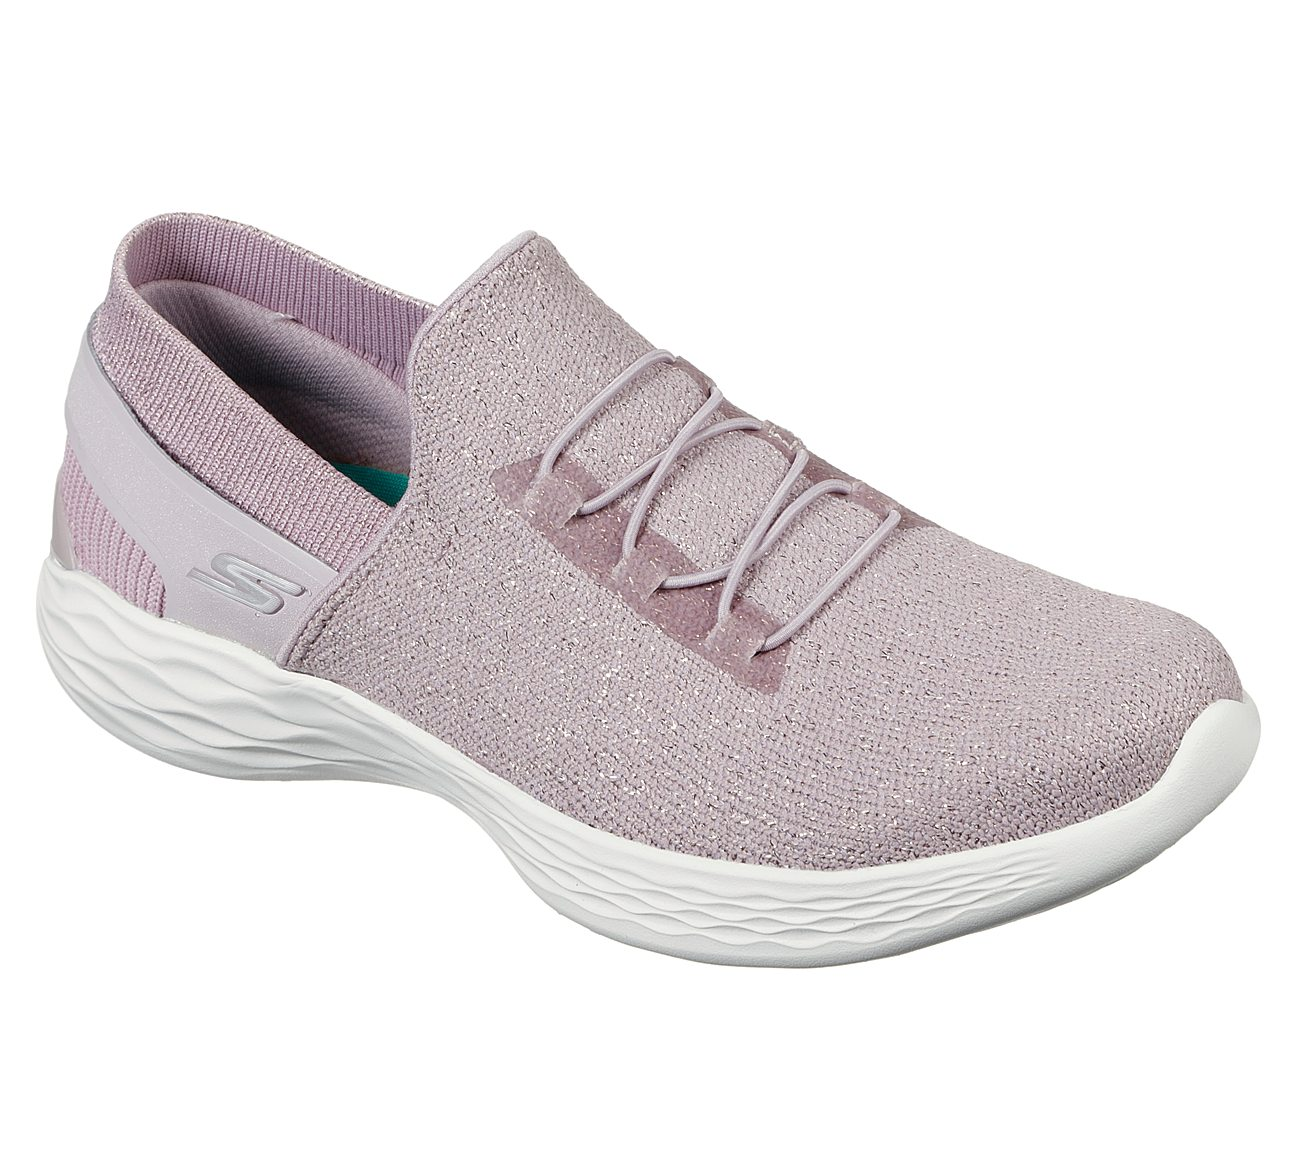 Admire YOU by skechers Shoes